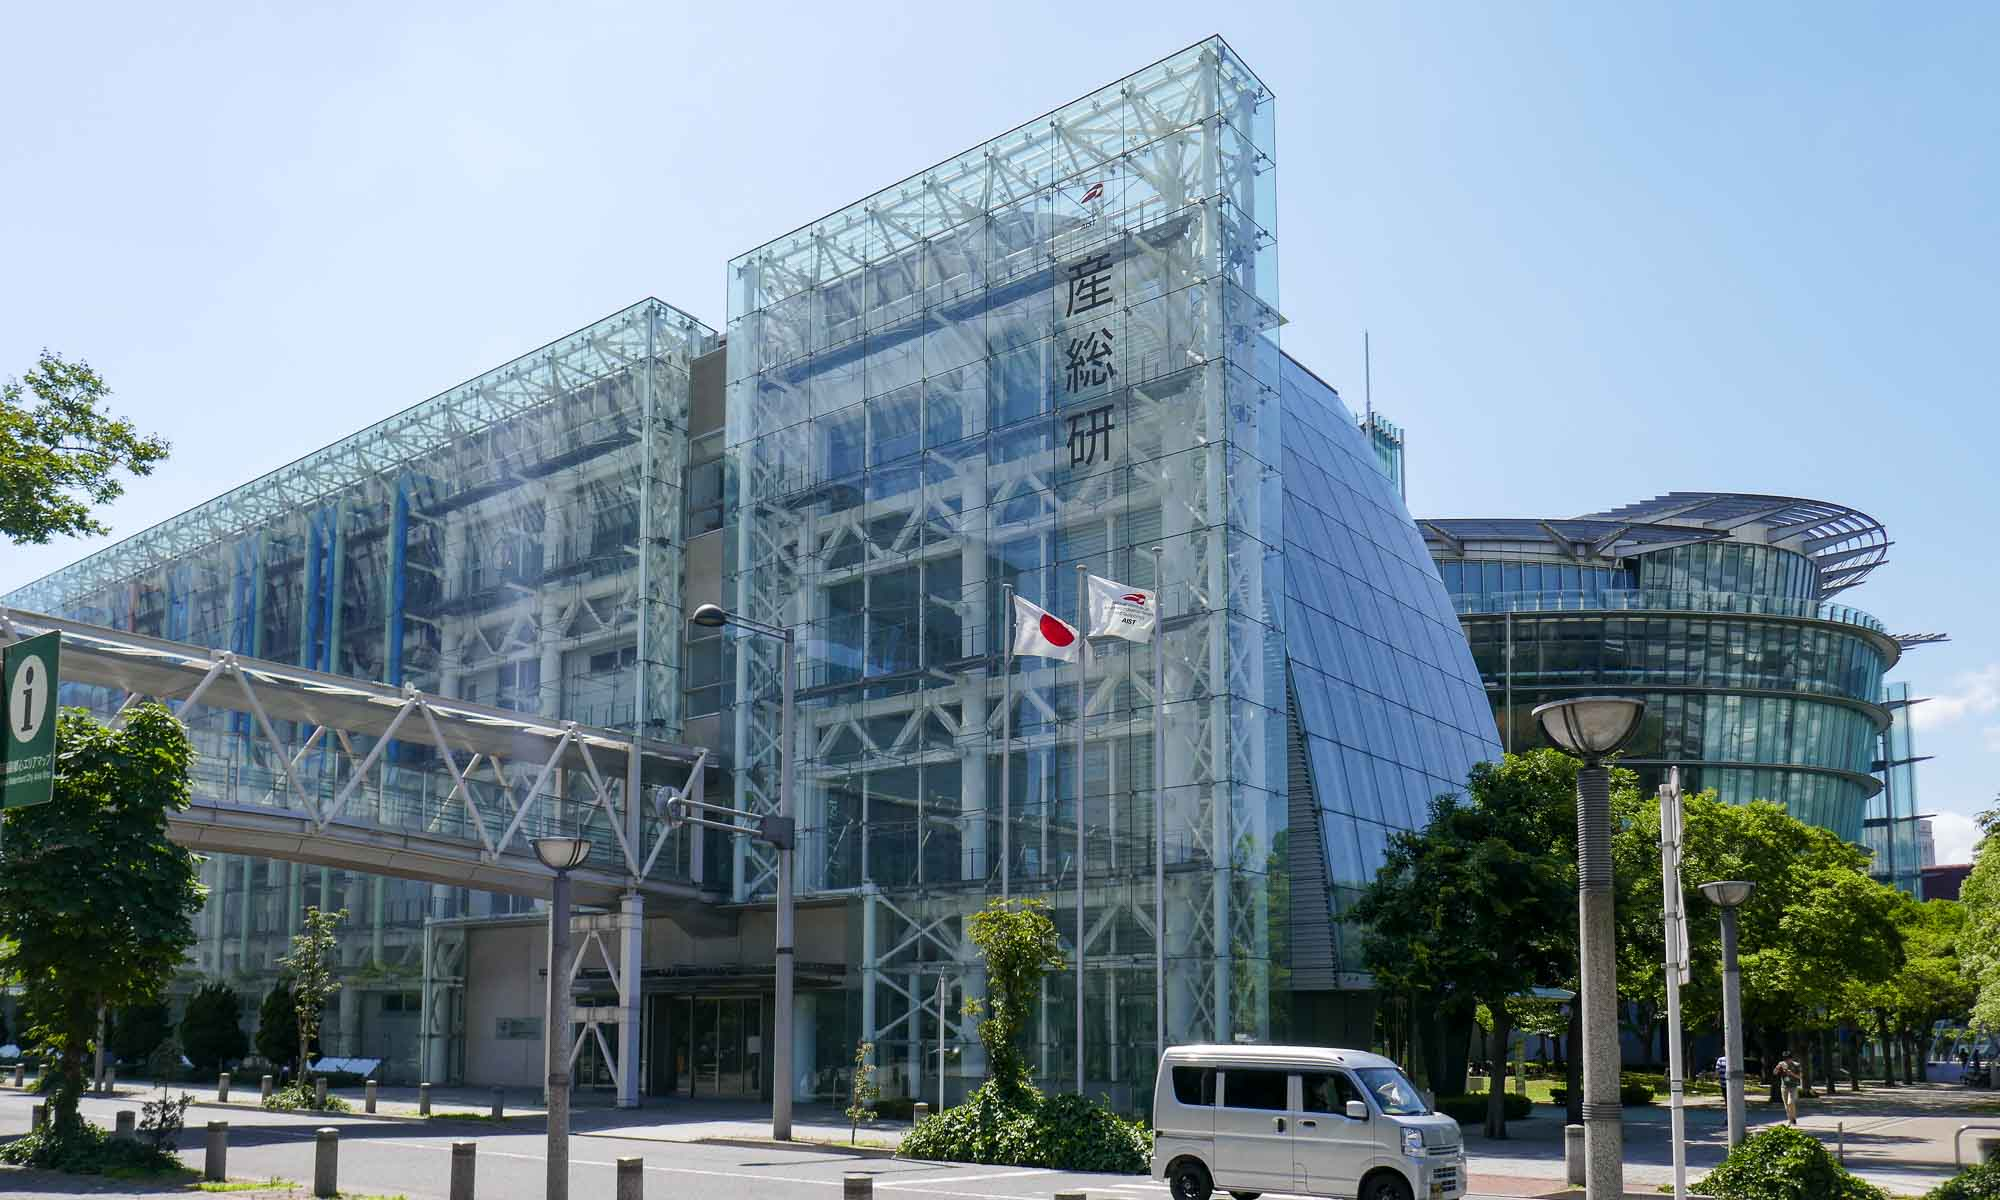 AIST Tokyo Waterfront building and the National Museum of Emerging Science and Innovation at the back